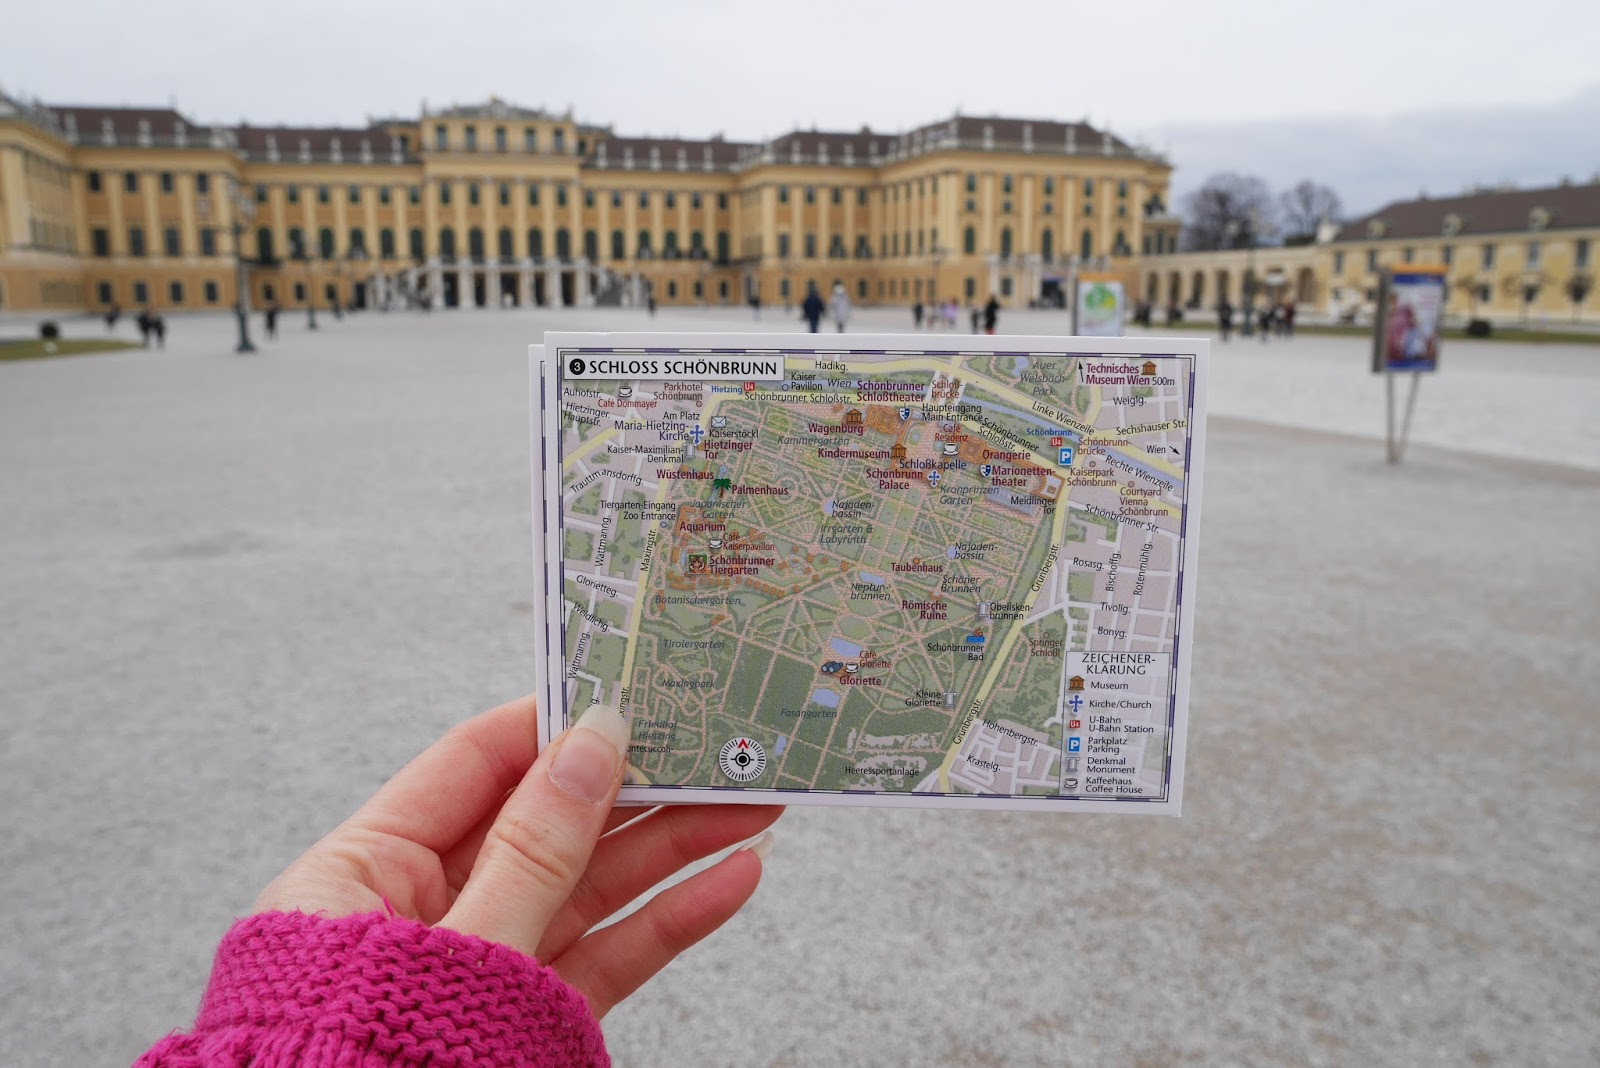 Exploring Vienna, Austria by map